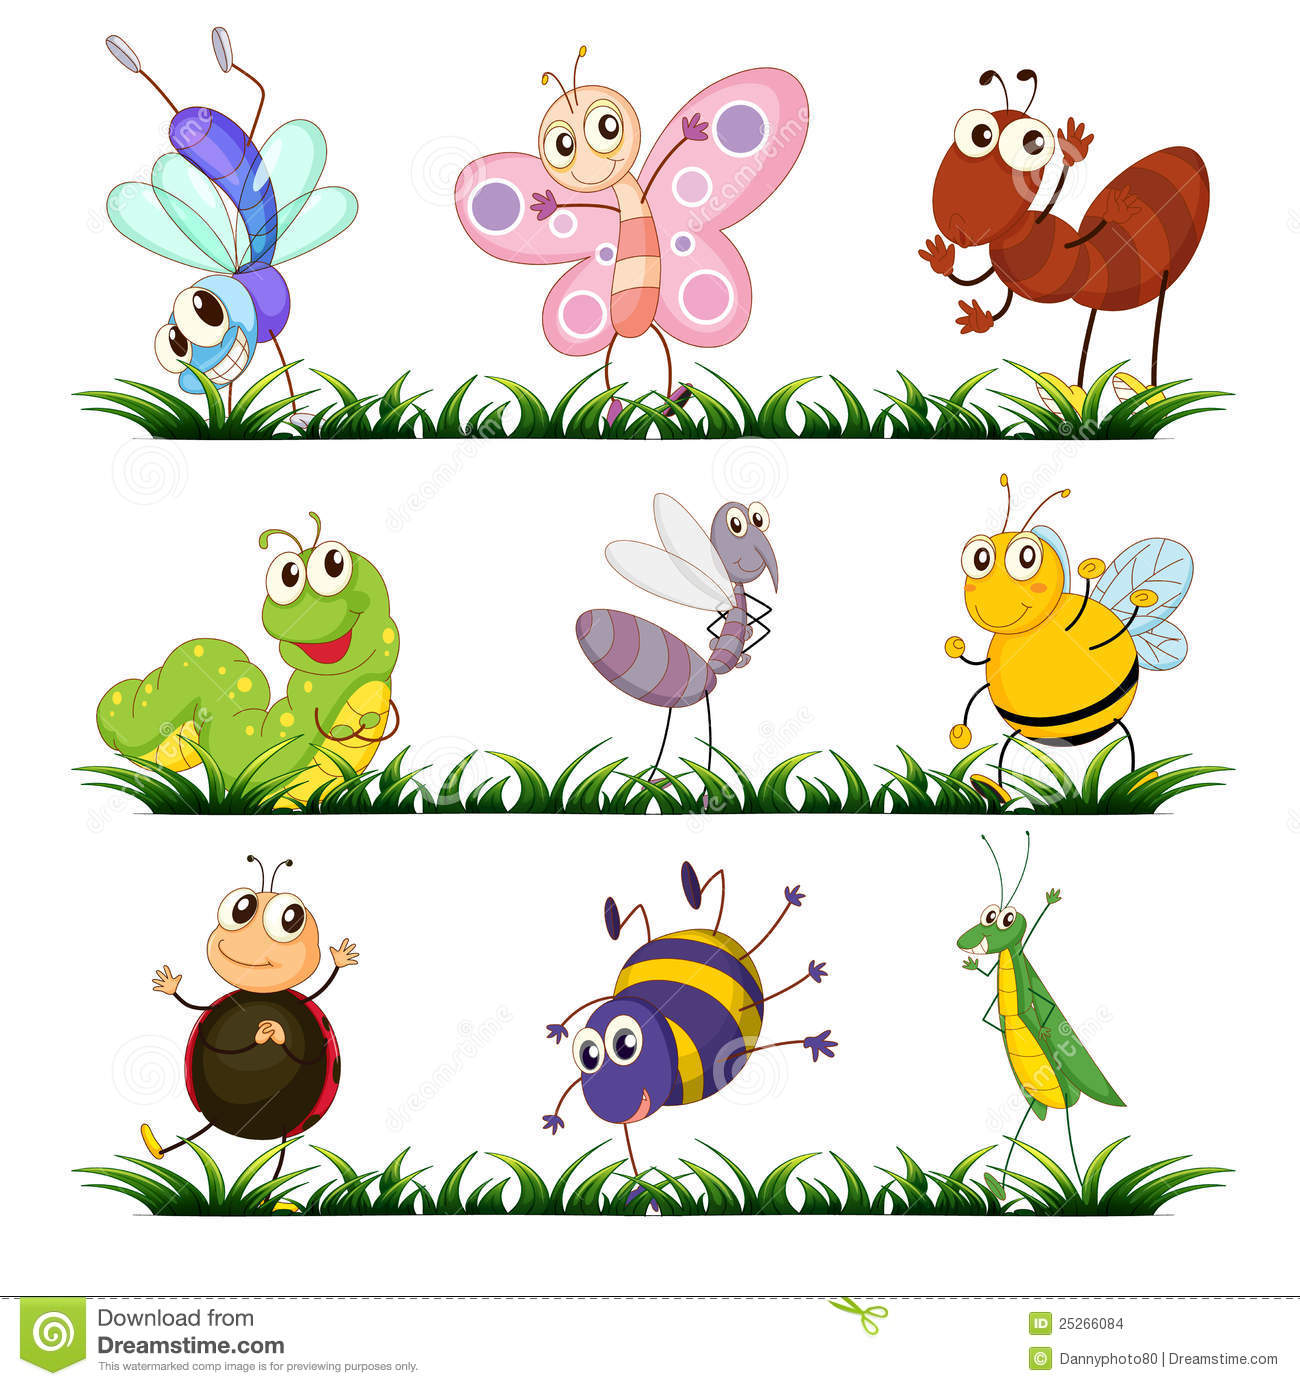 Insects clipart 9 » Clipart Station.